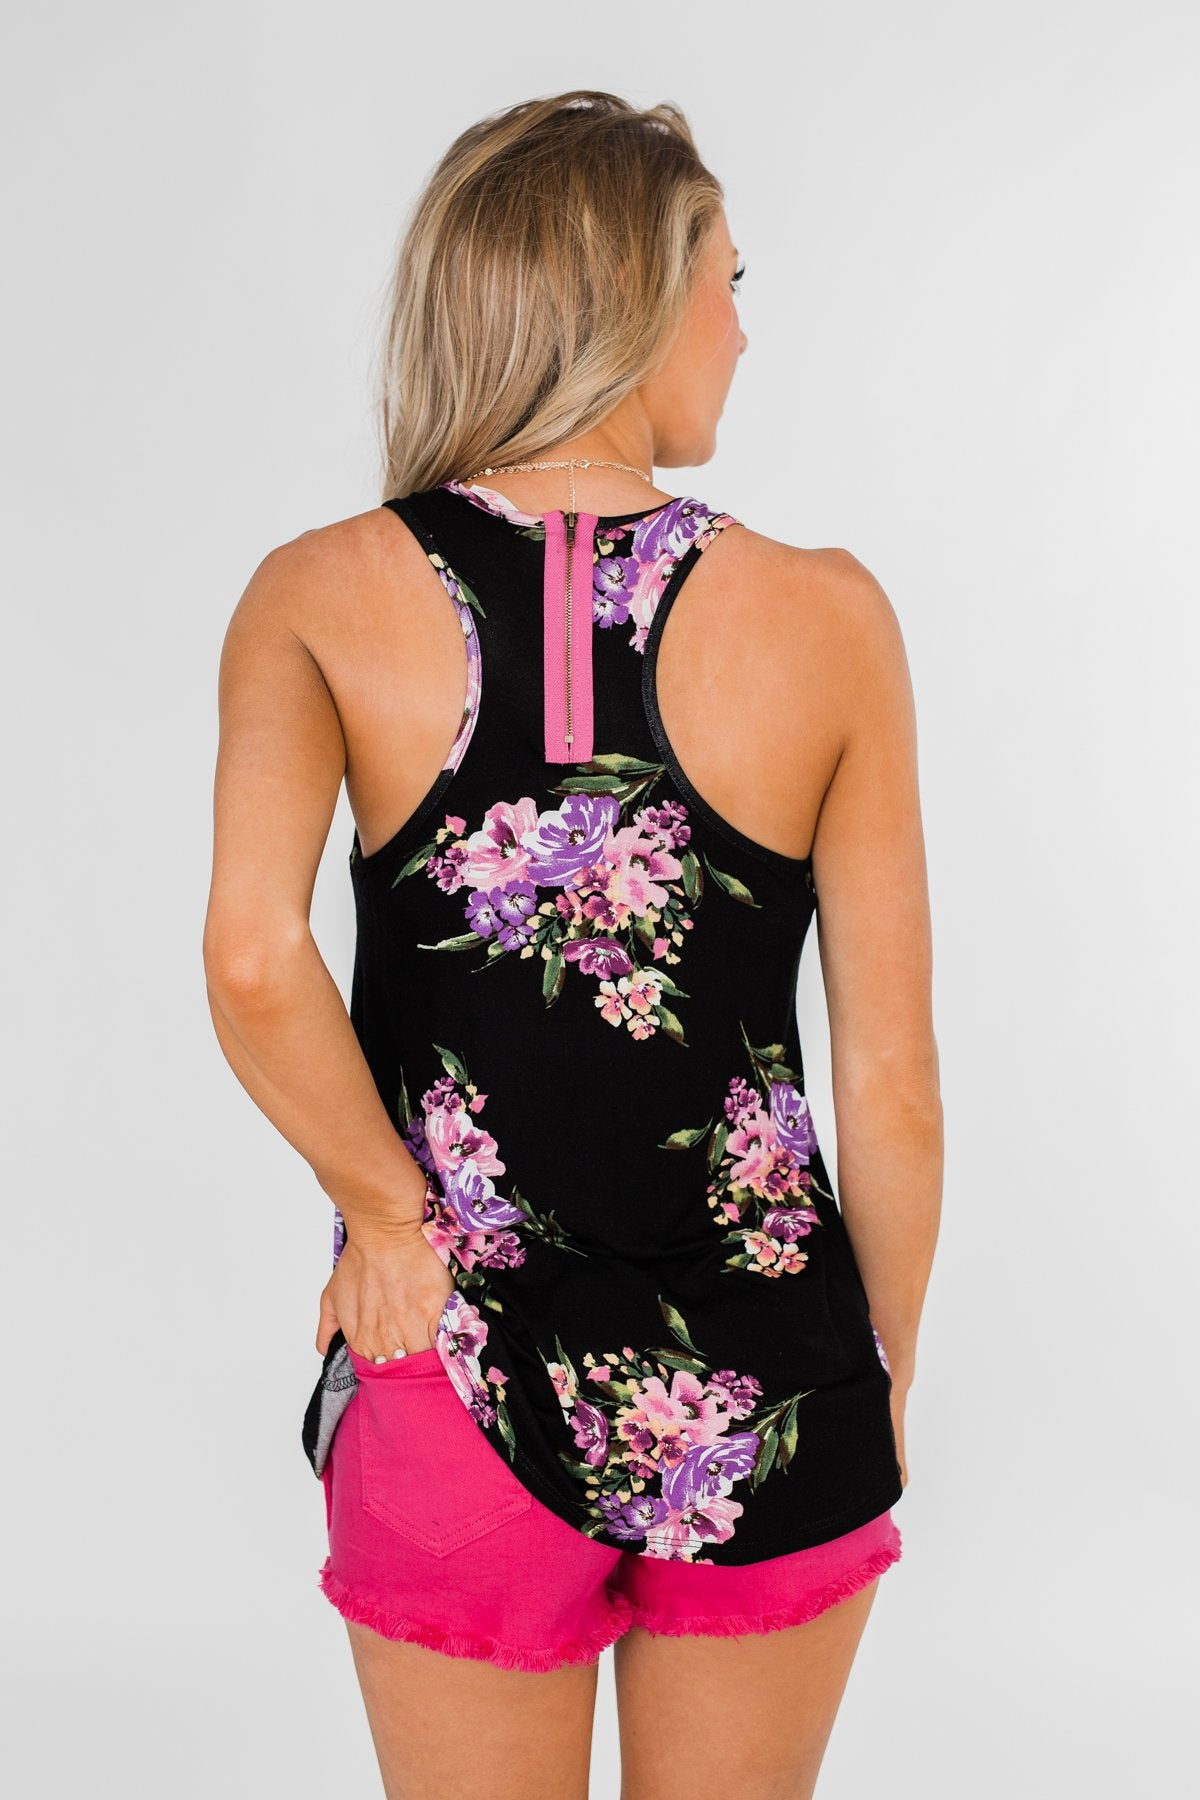 Night Blooms Floral Racerback Tank Top- Black